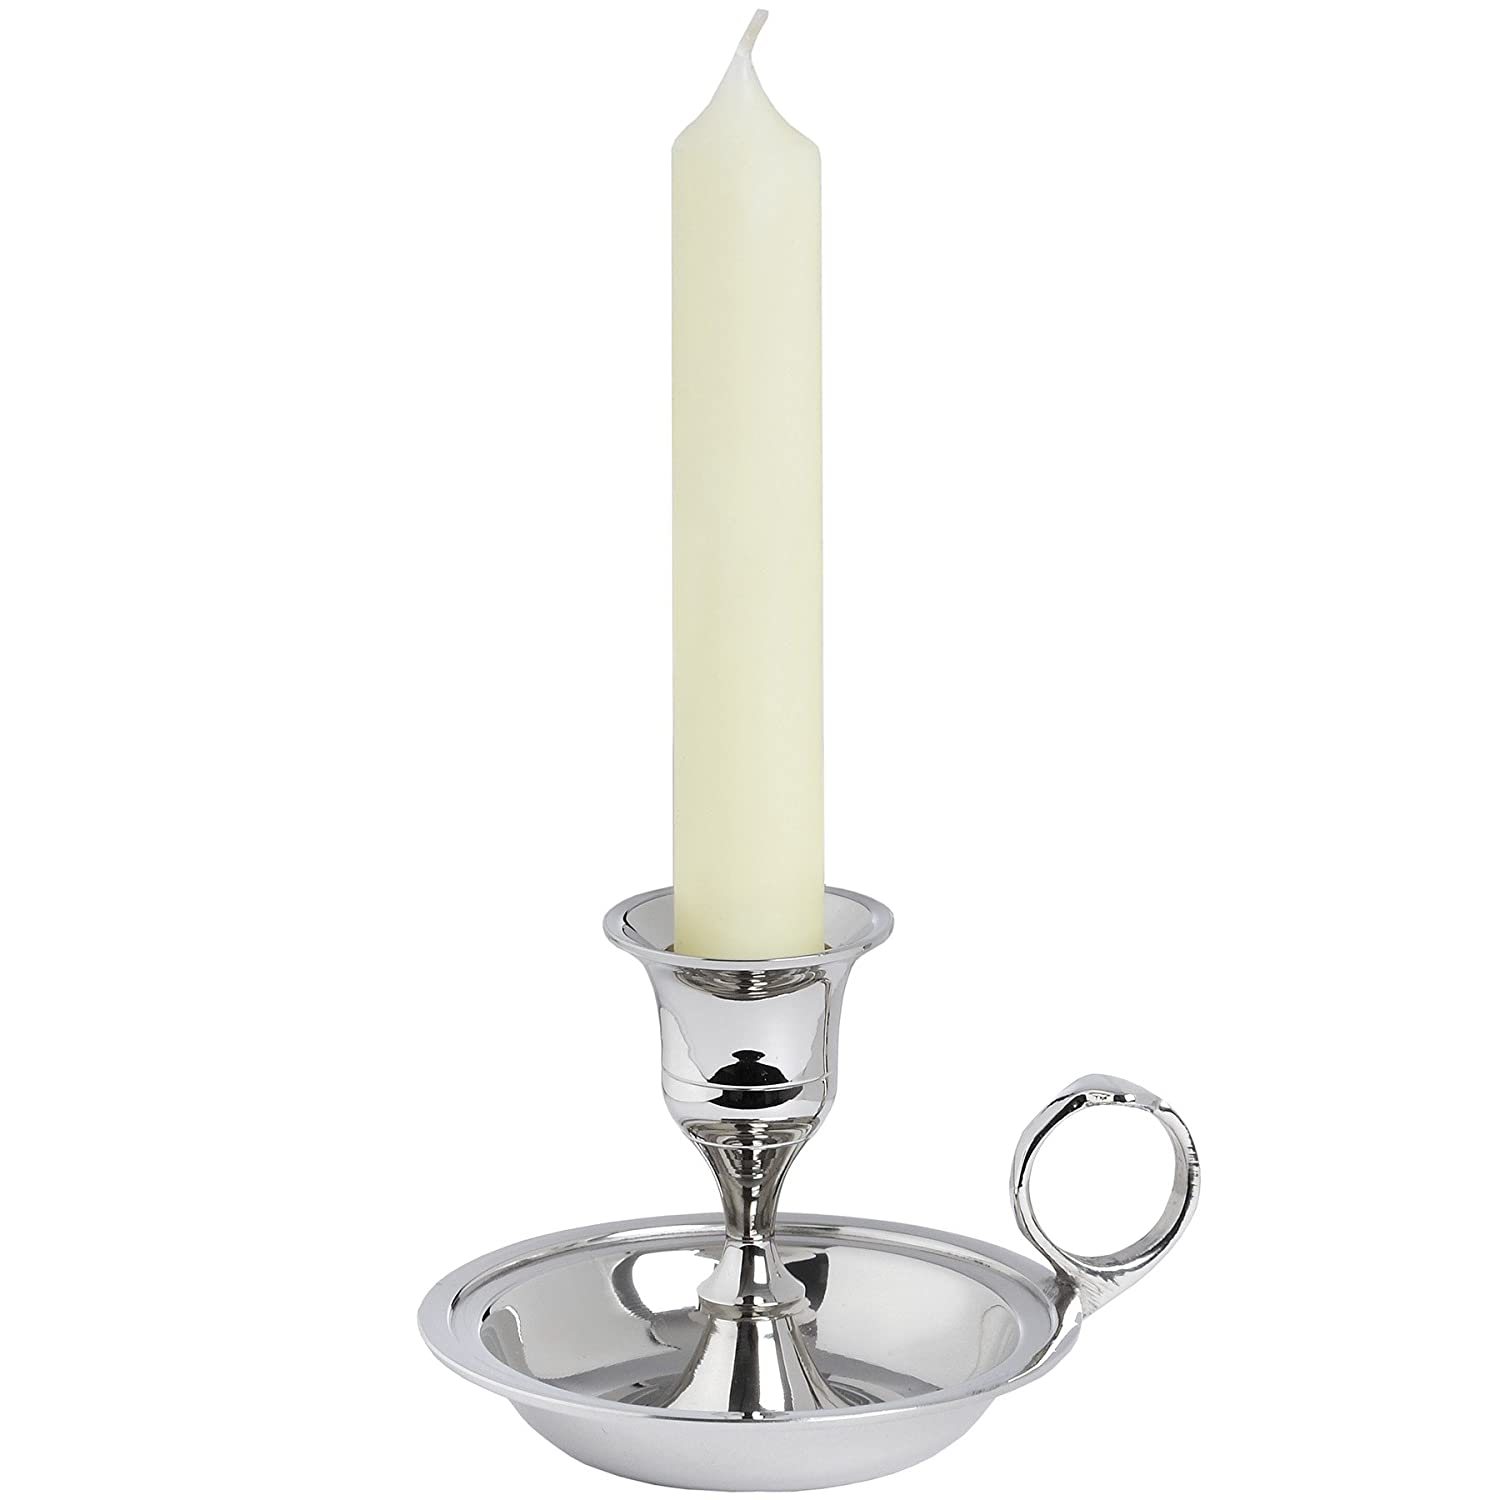 Interior Flair Polished Nickel Classic Wee Willie Winkie Single Candle Holder